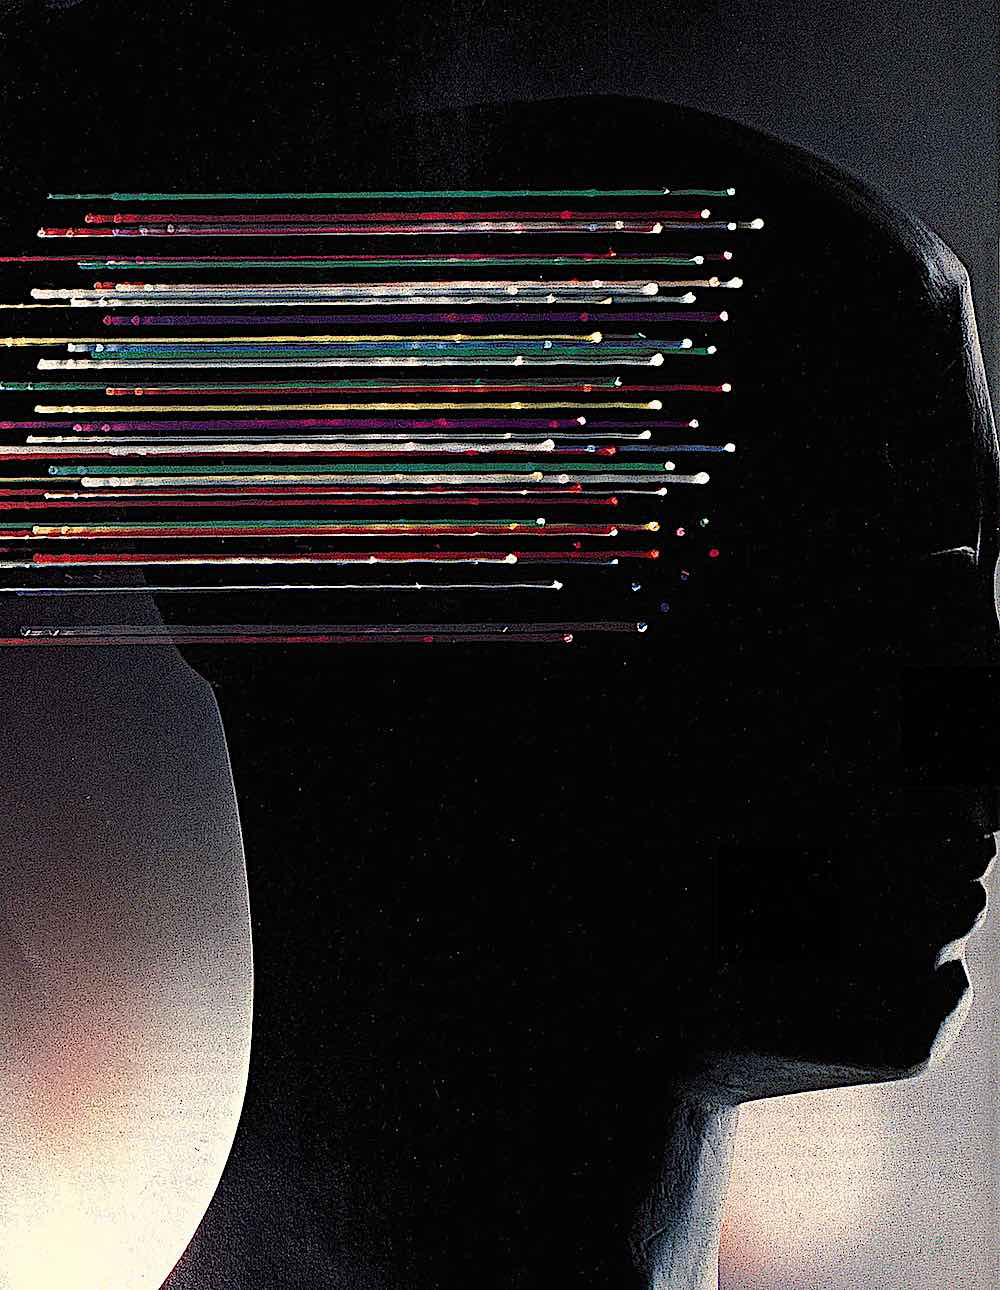 a 1968 illustration about the human brain and thoughts